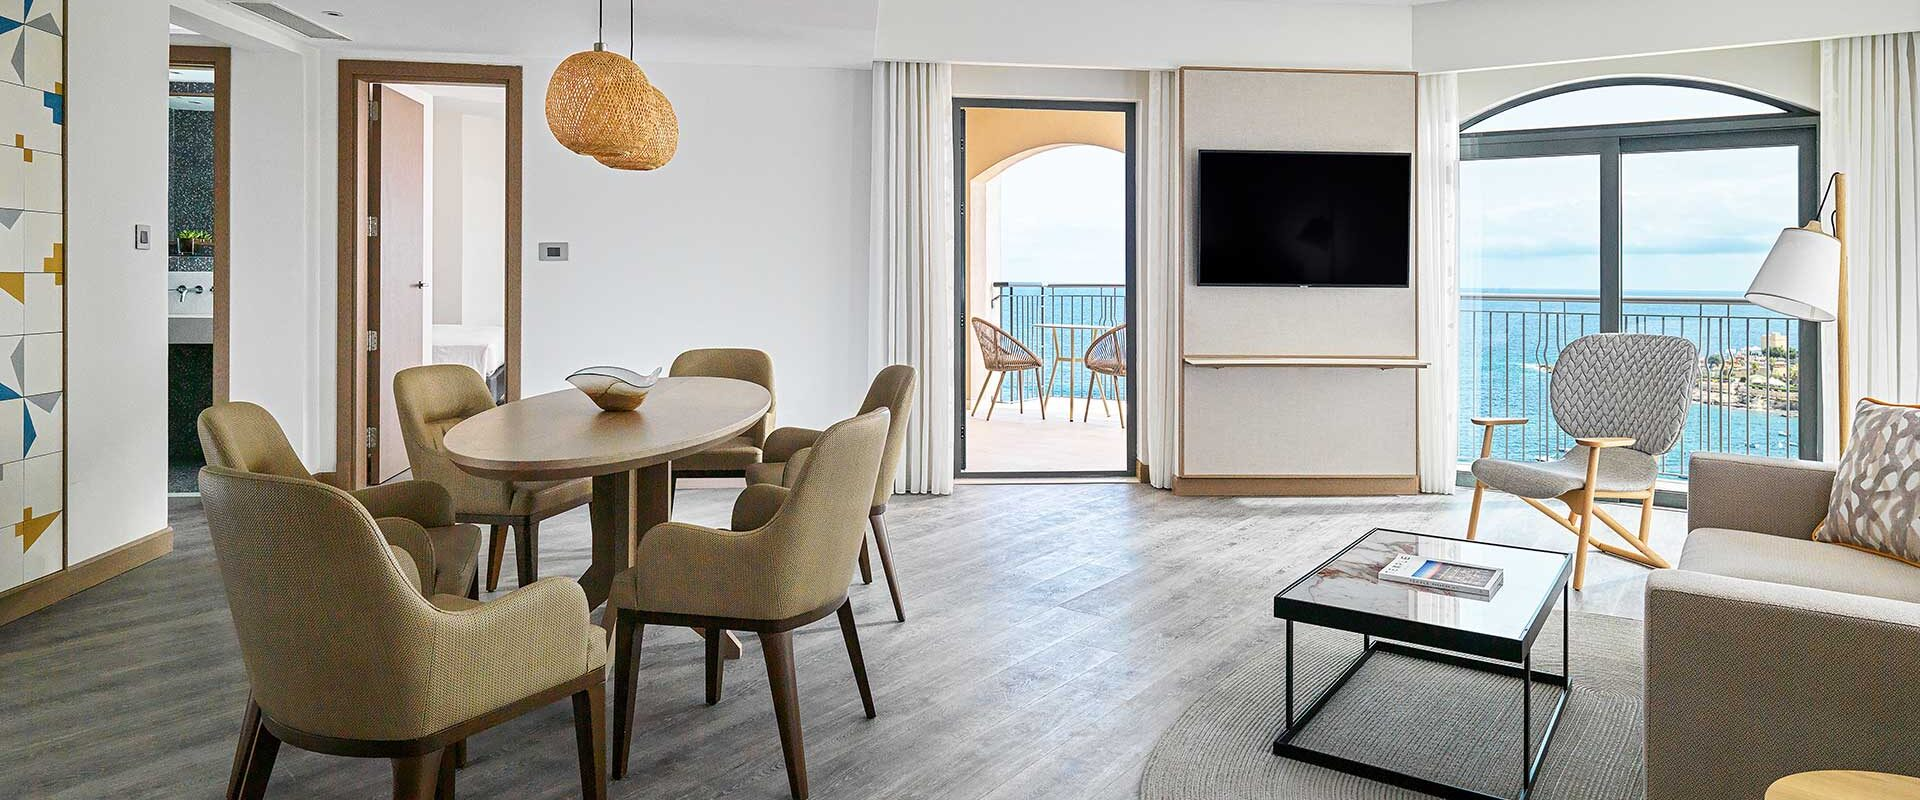 a spacious luxury hotel suite living area with modern furnishings and a terrace overlooking the mediterranean sea